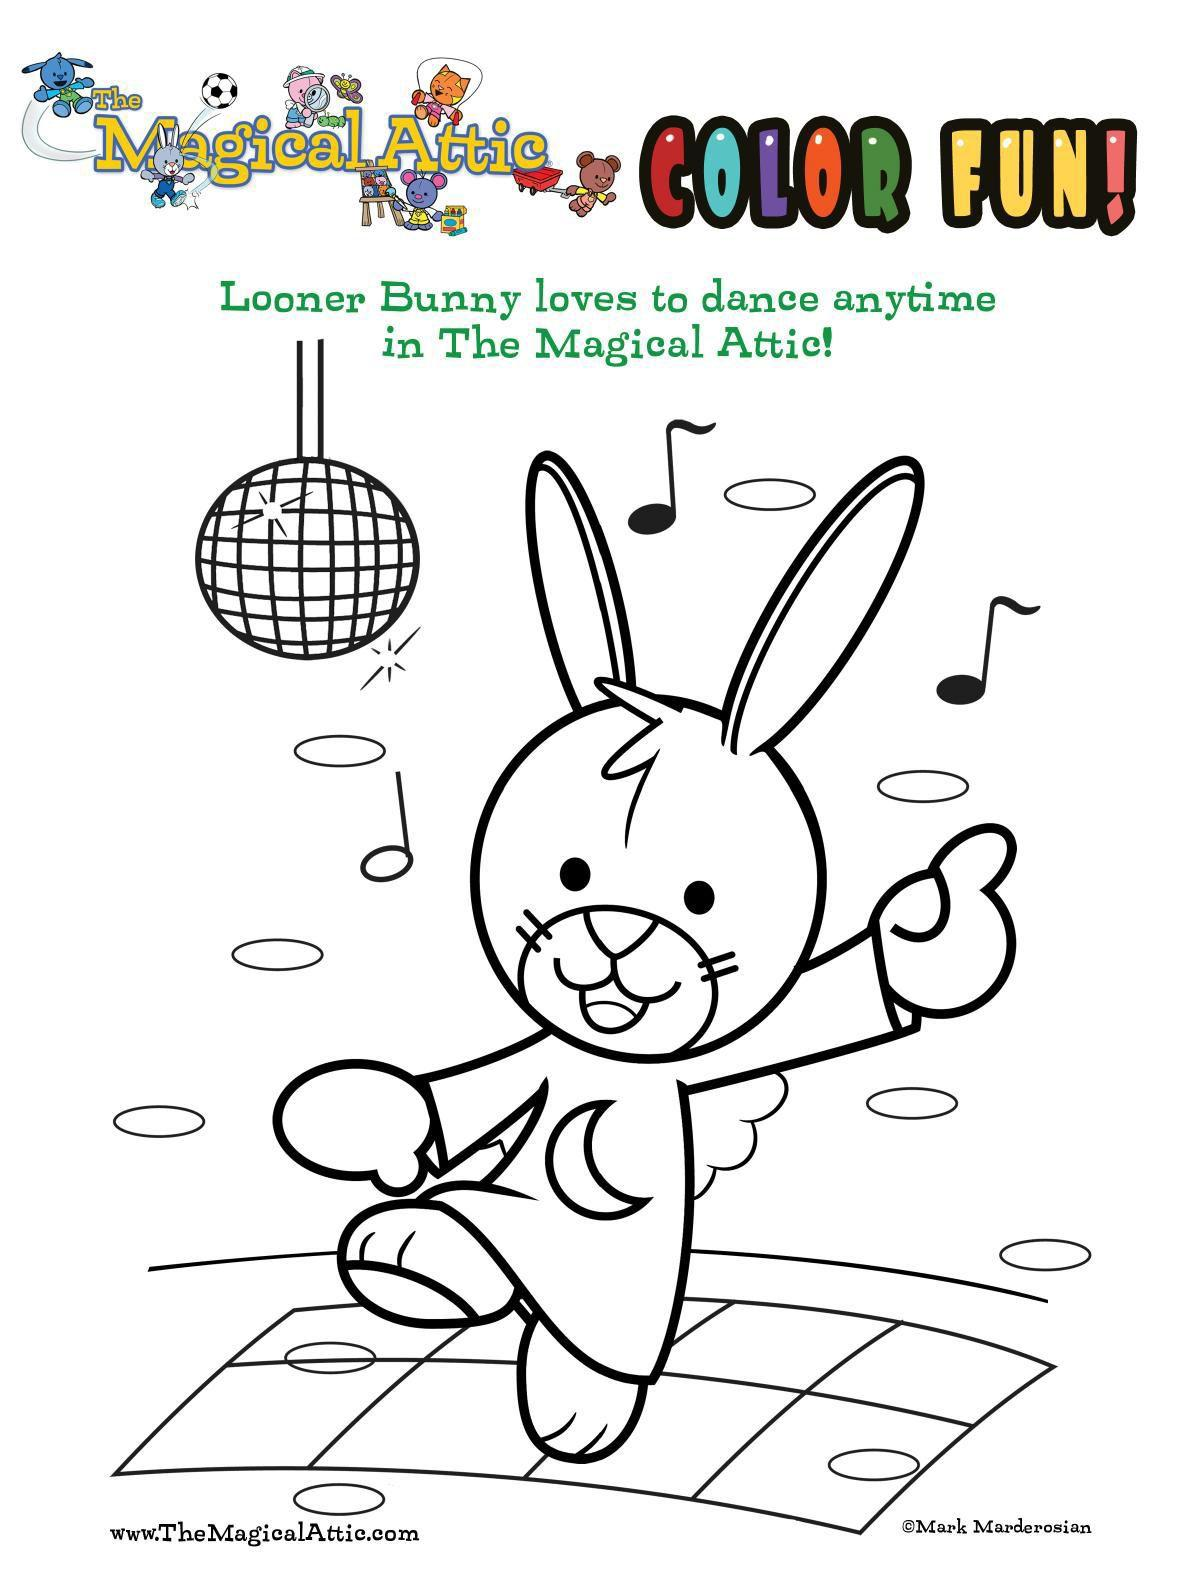 Coloring with Looner Bunny